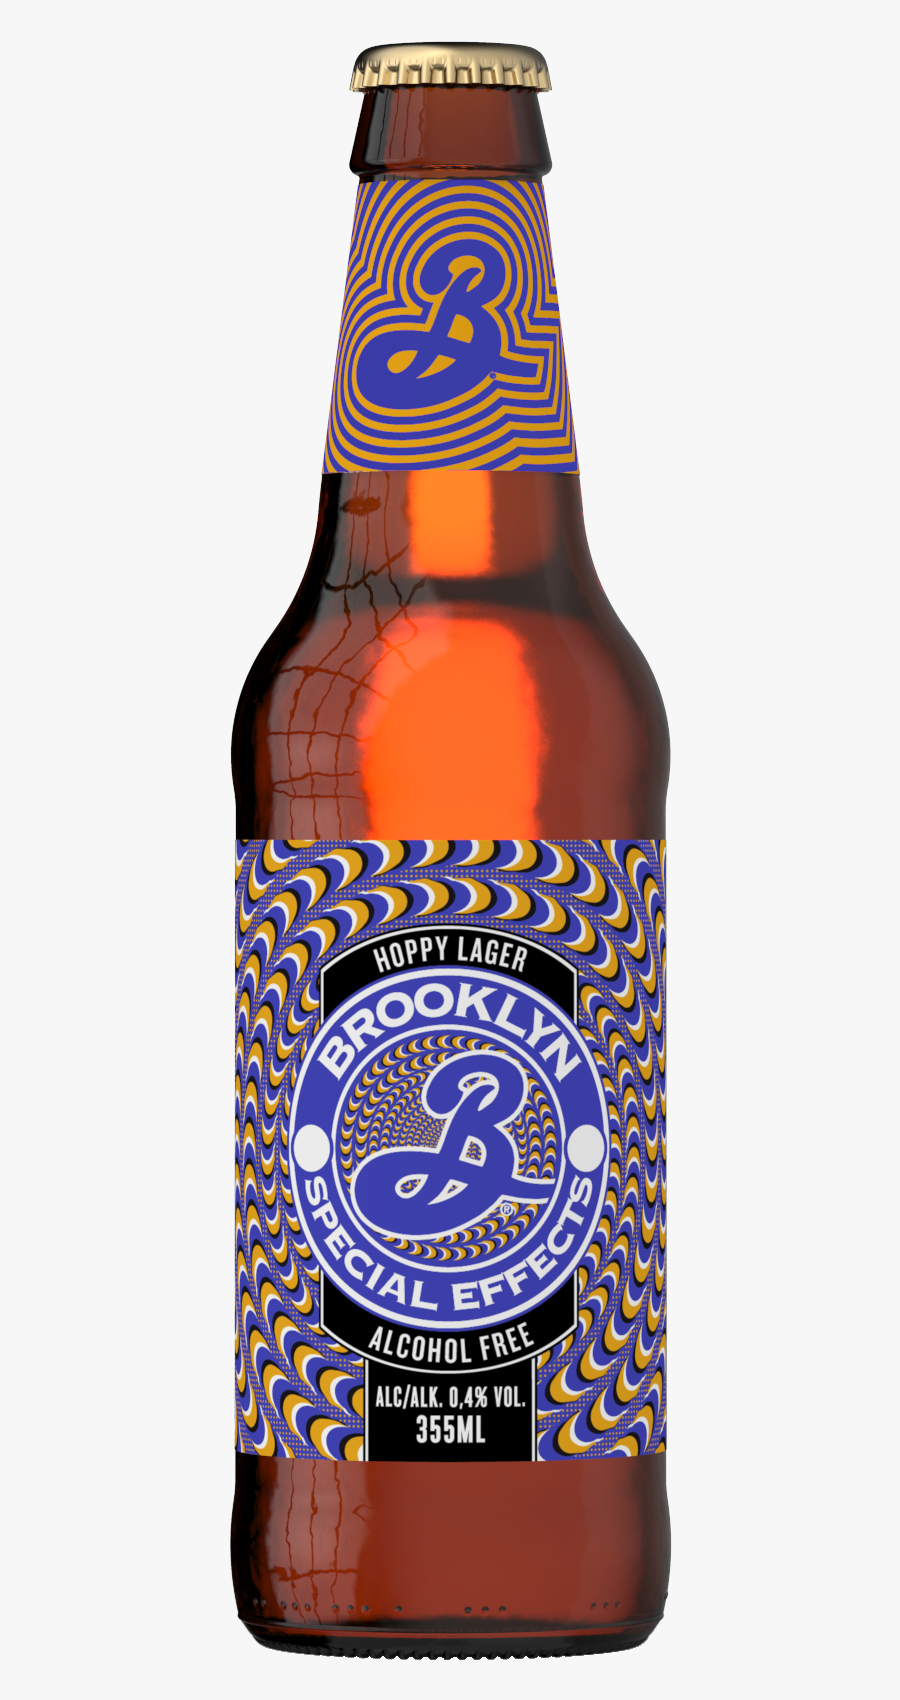 Transparent Png Special Effects - Brooklyn Brewery Special Effects, Transparent Clipart